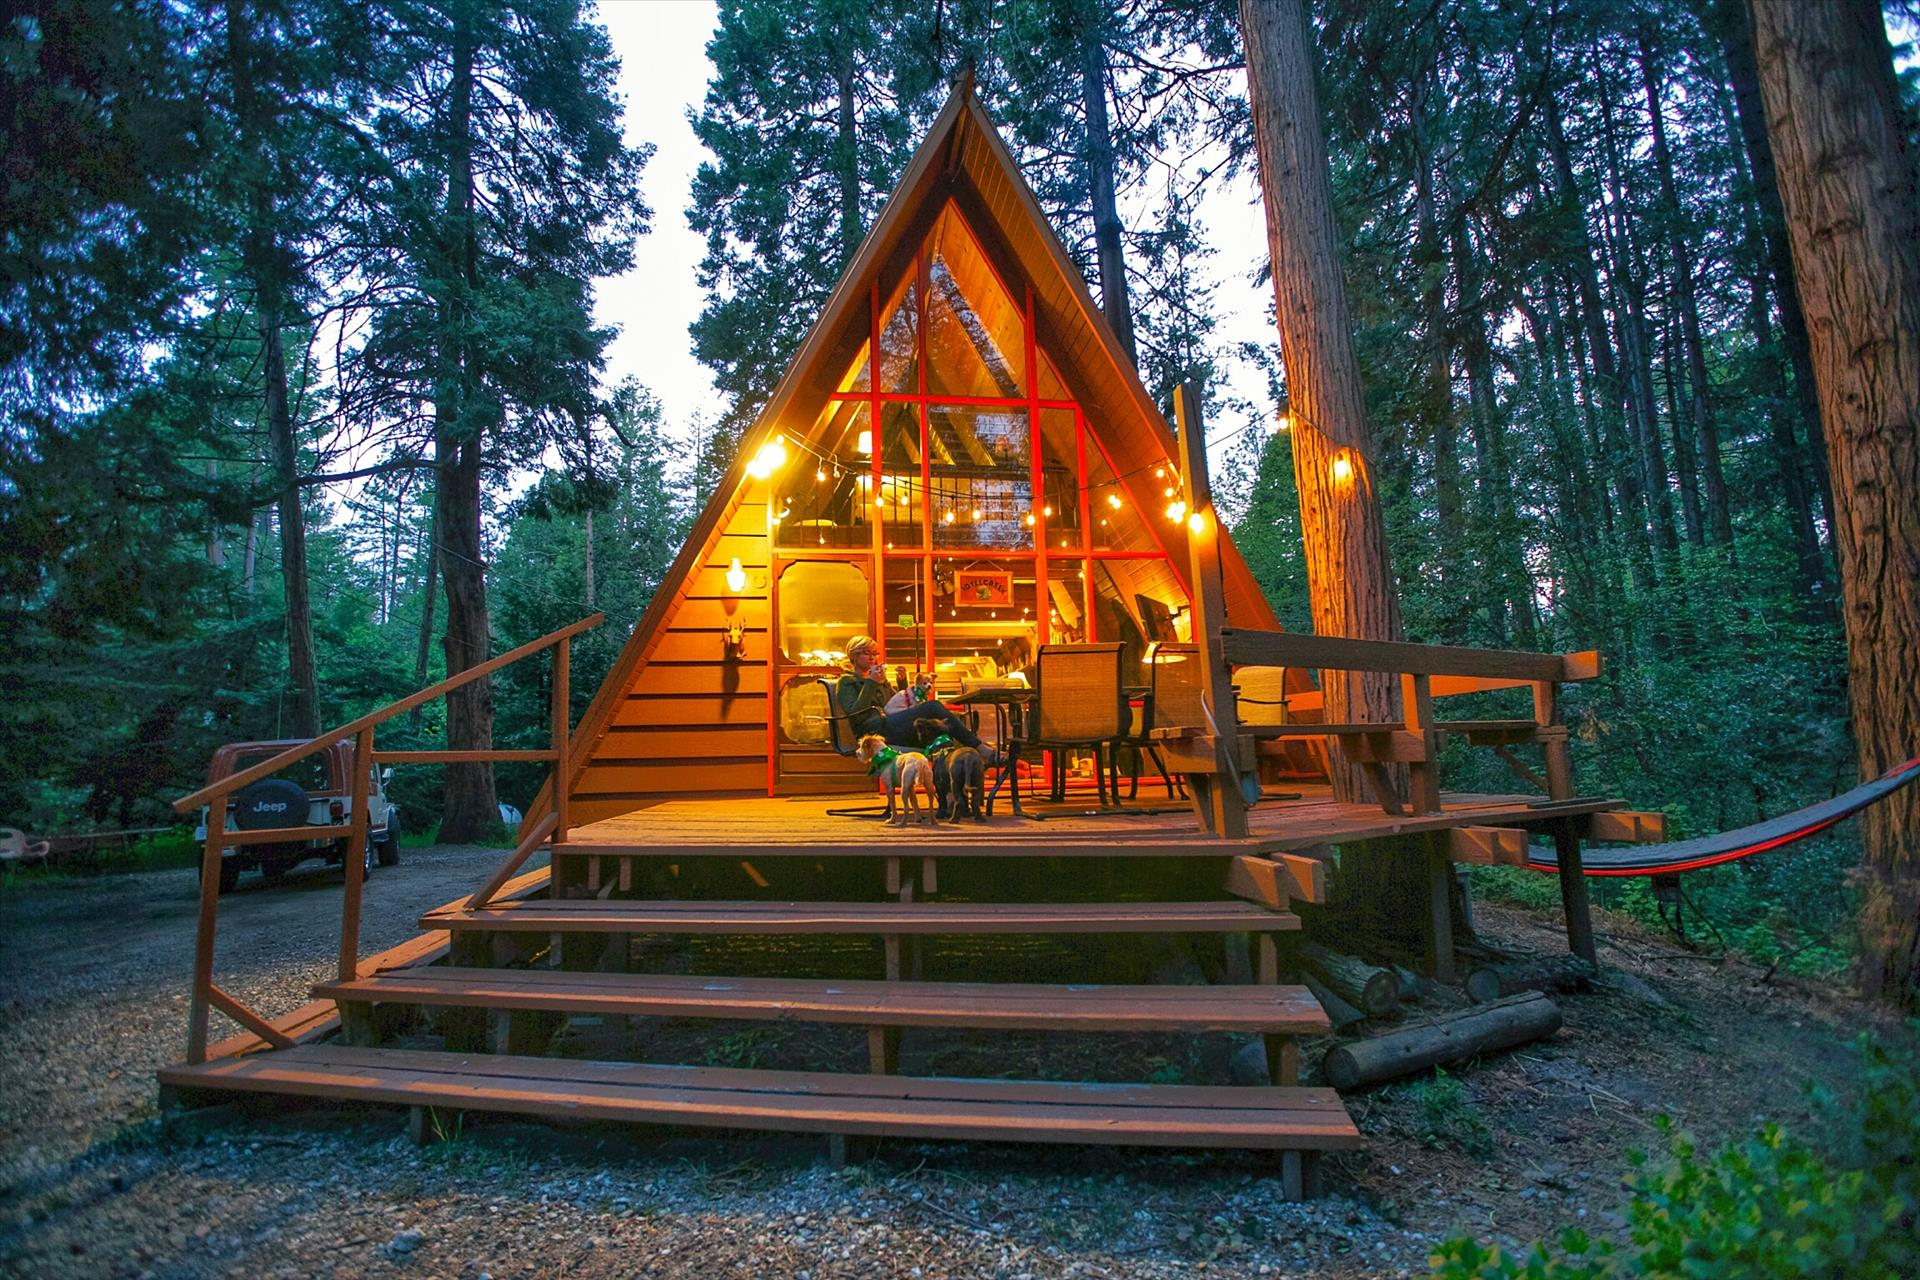 Idyllcreek A-Frame Cabin - Vacation Rental Cabins in